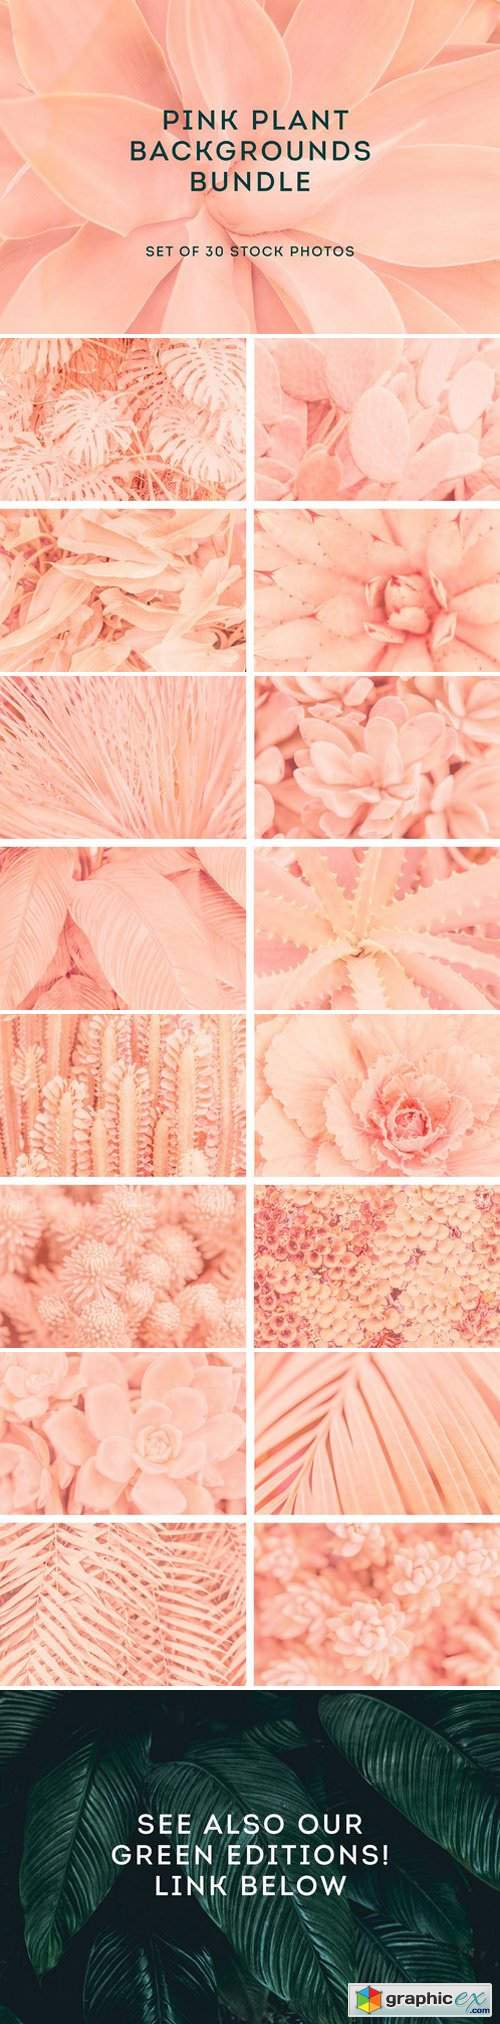 Pink backgrounds bundle